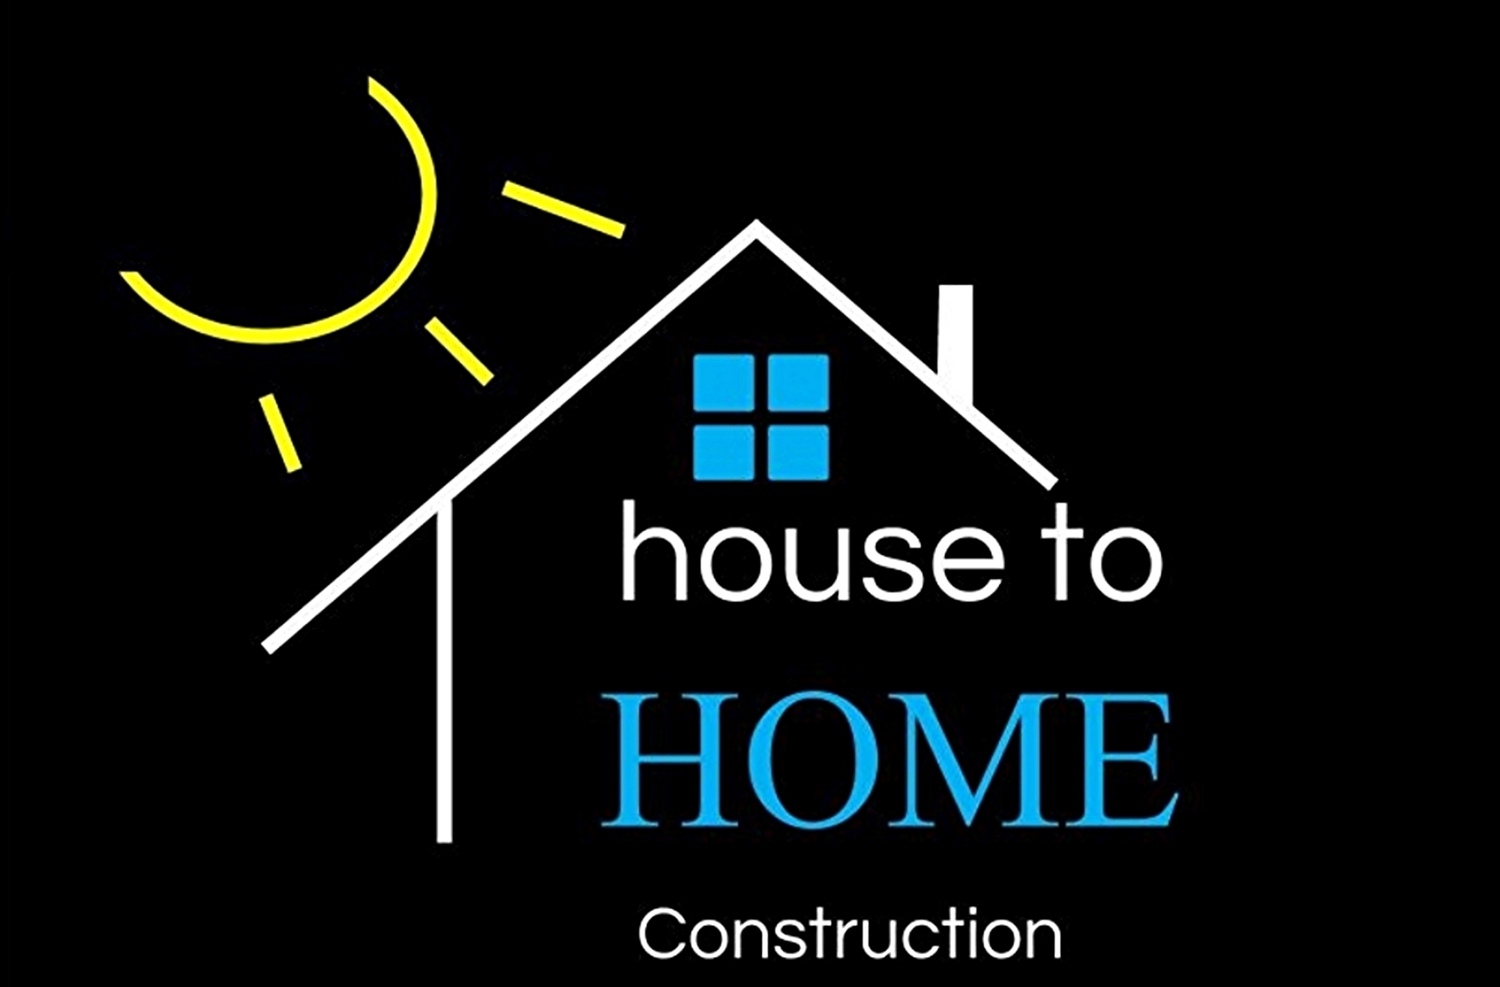 House to HOME Construction. Remodel, Construction, Repair